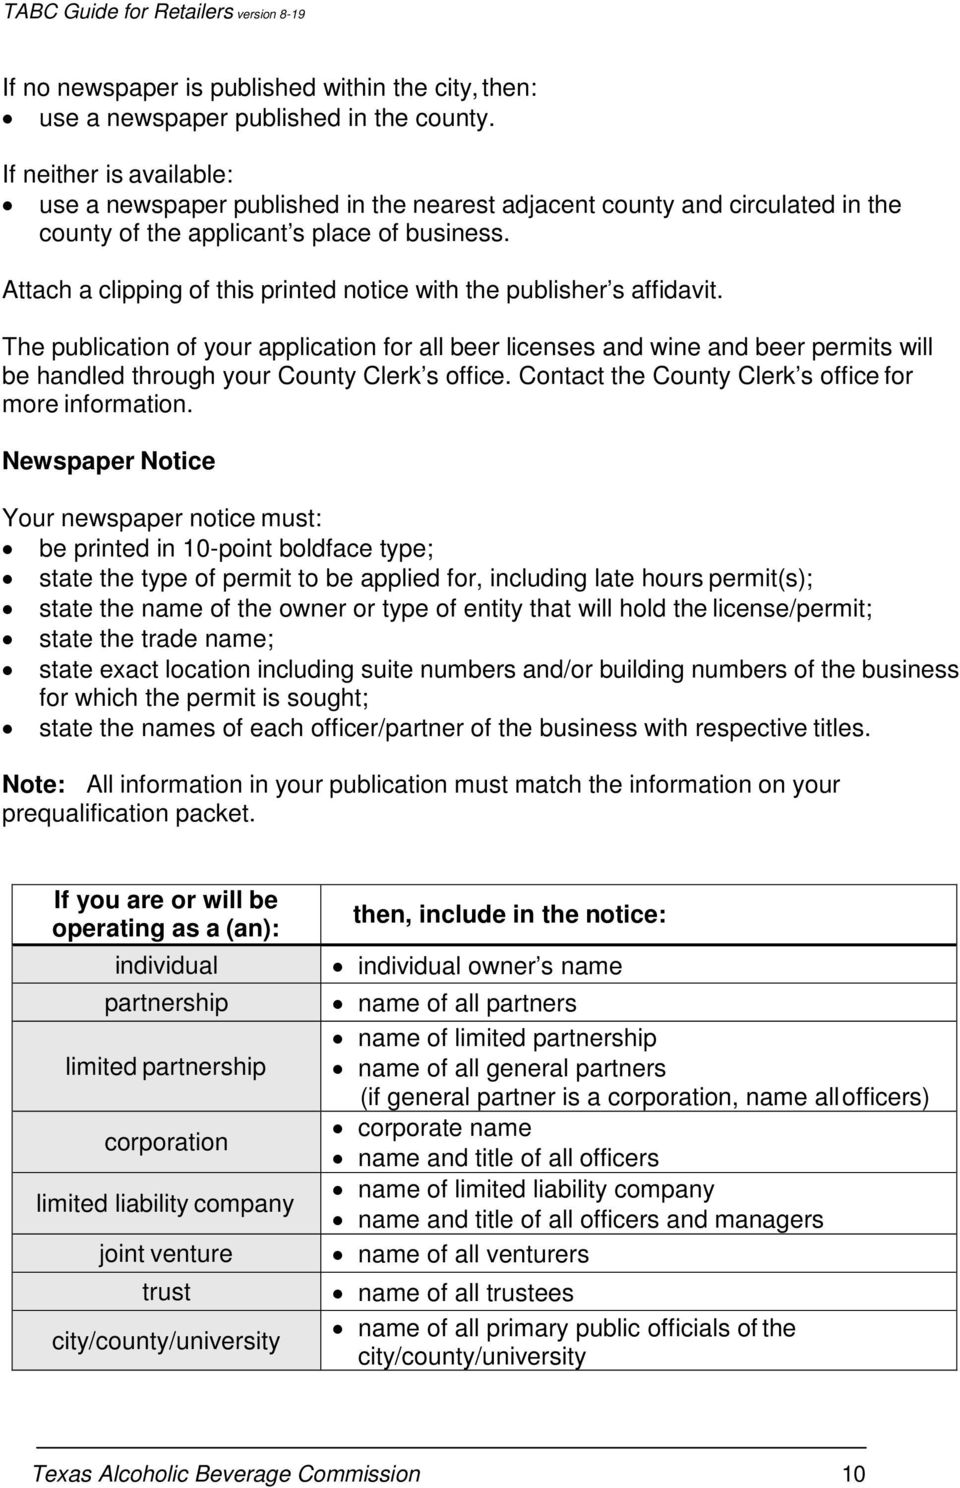 Attach a clipping of this printed notice with the publisher s affidavit.